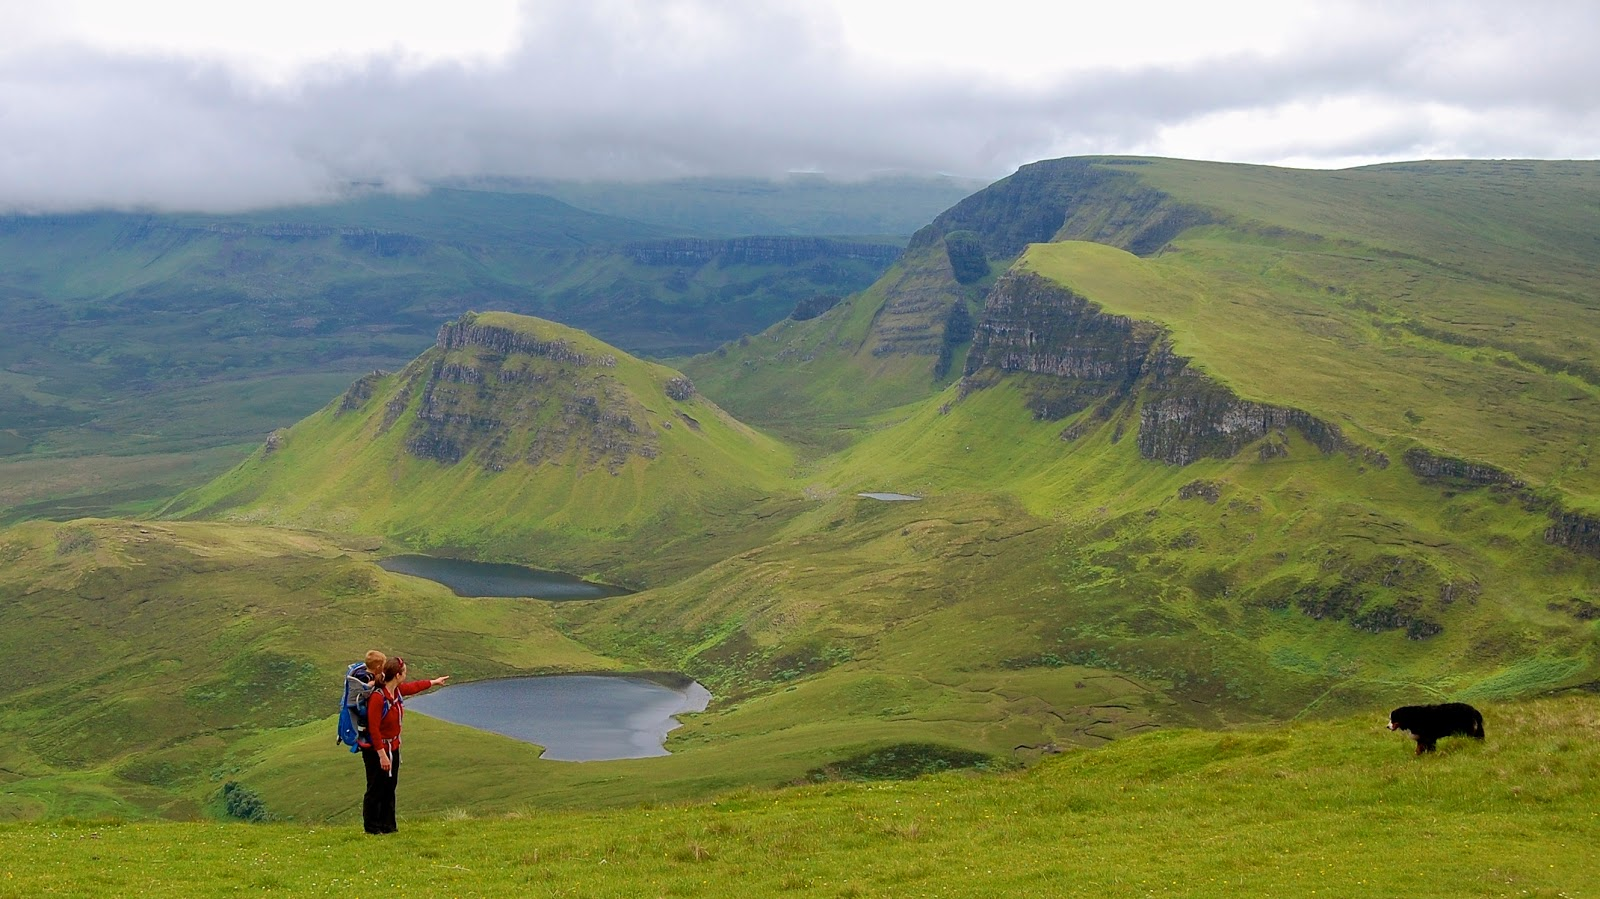 Hiking on the Trotternish Peninsula on the Isle of Skye